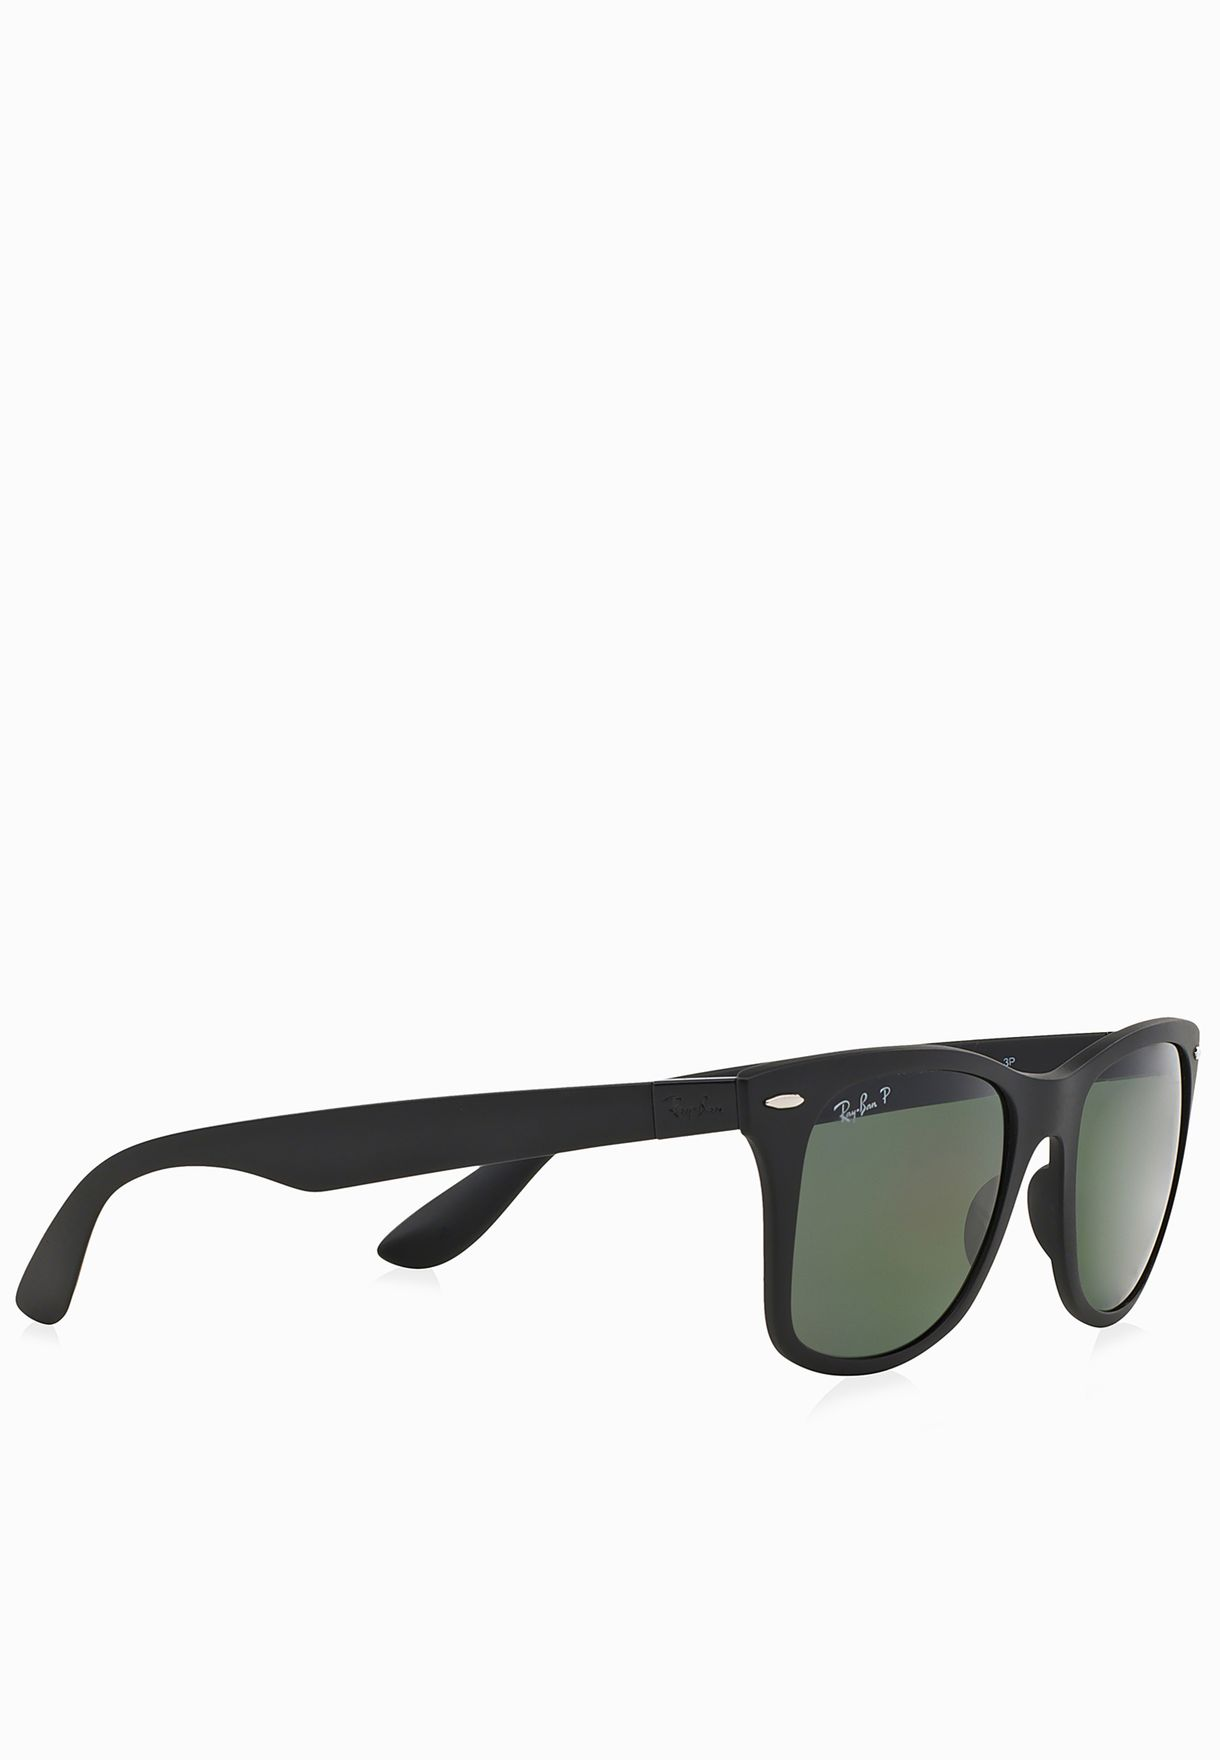 6cfd0d207ad Shop Ray-Ban black 0RB4195 Wayfarer Liteforce 8053672067118 for ...